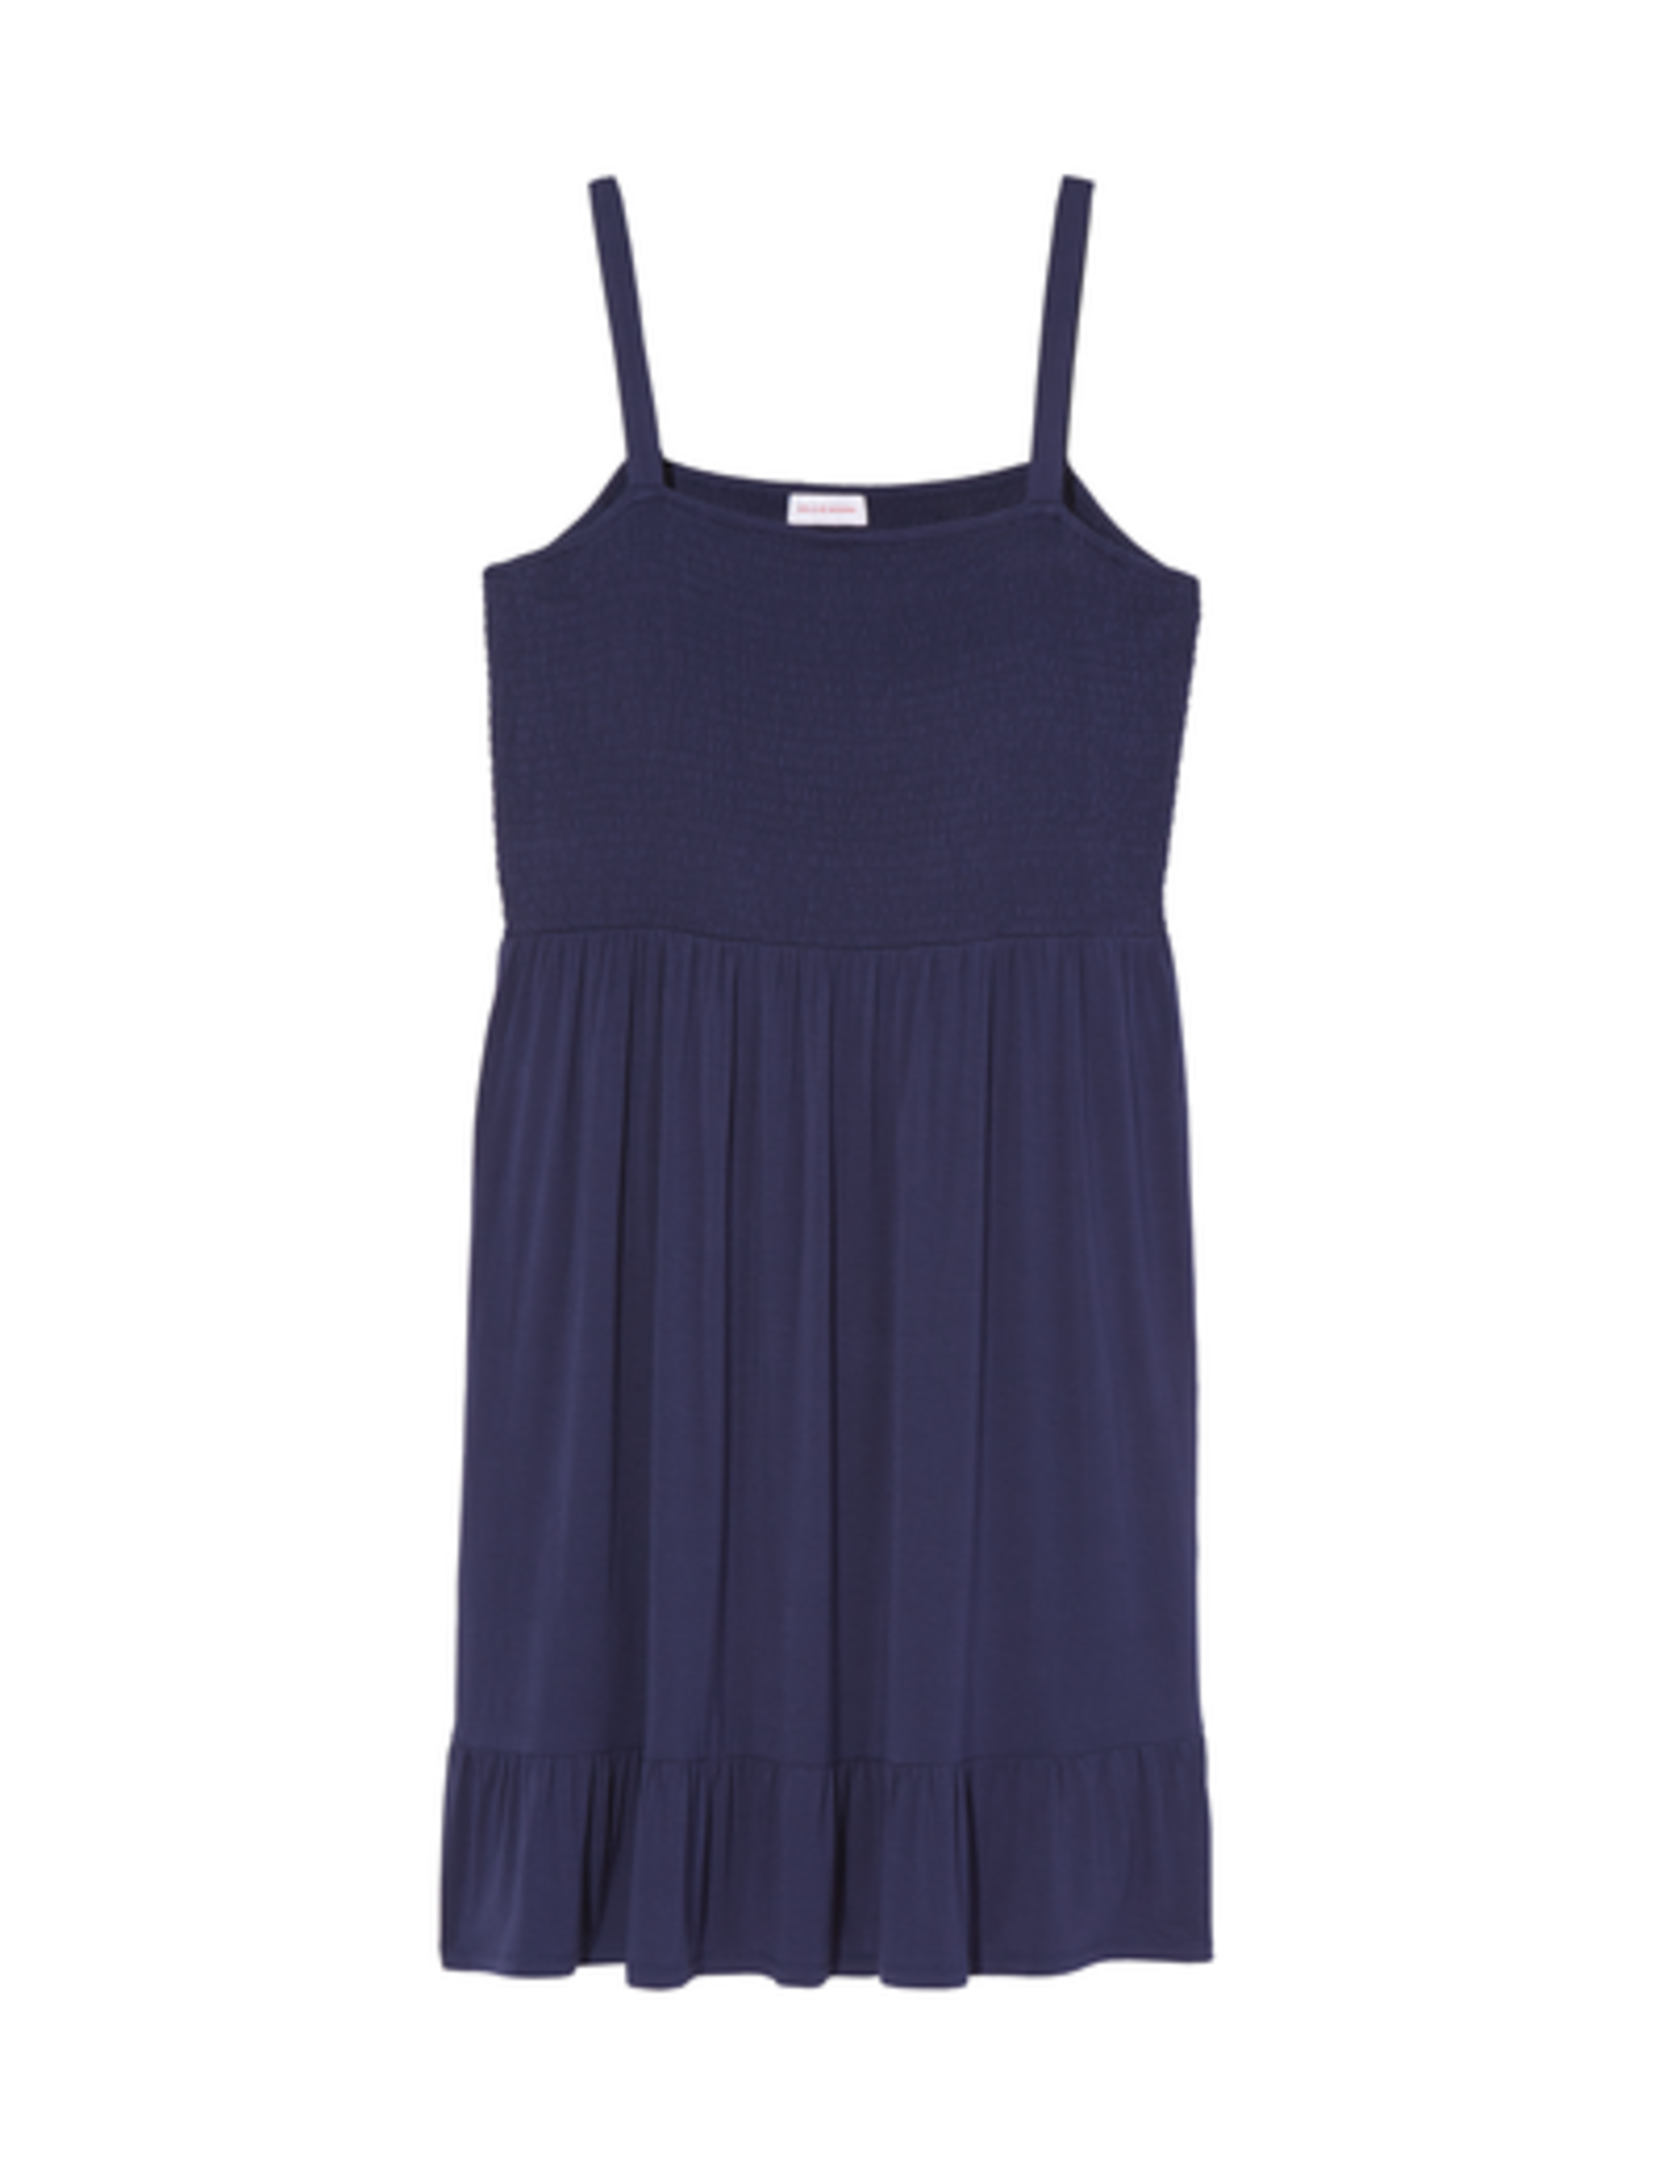 4th of july plus size smocked navy dress